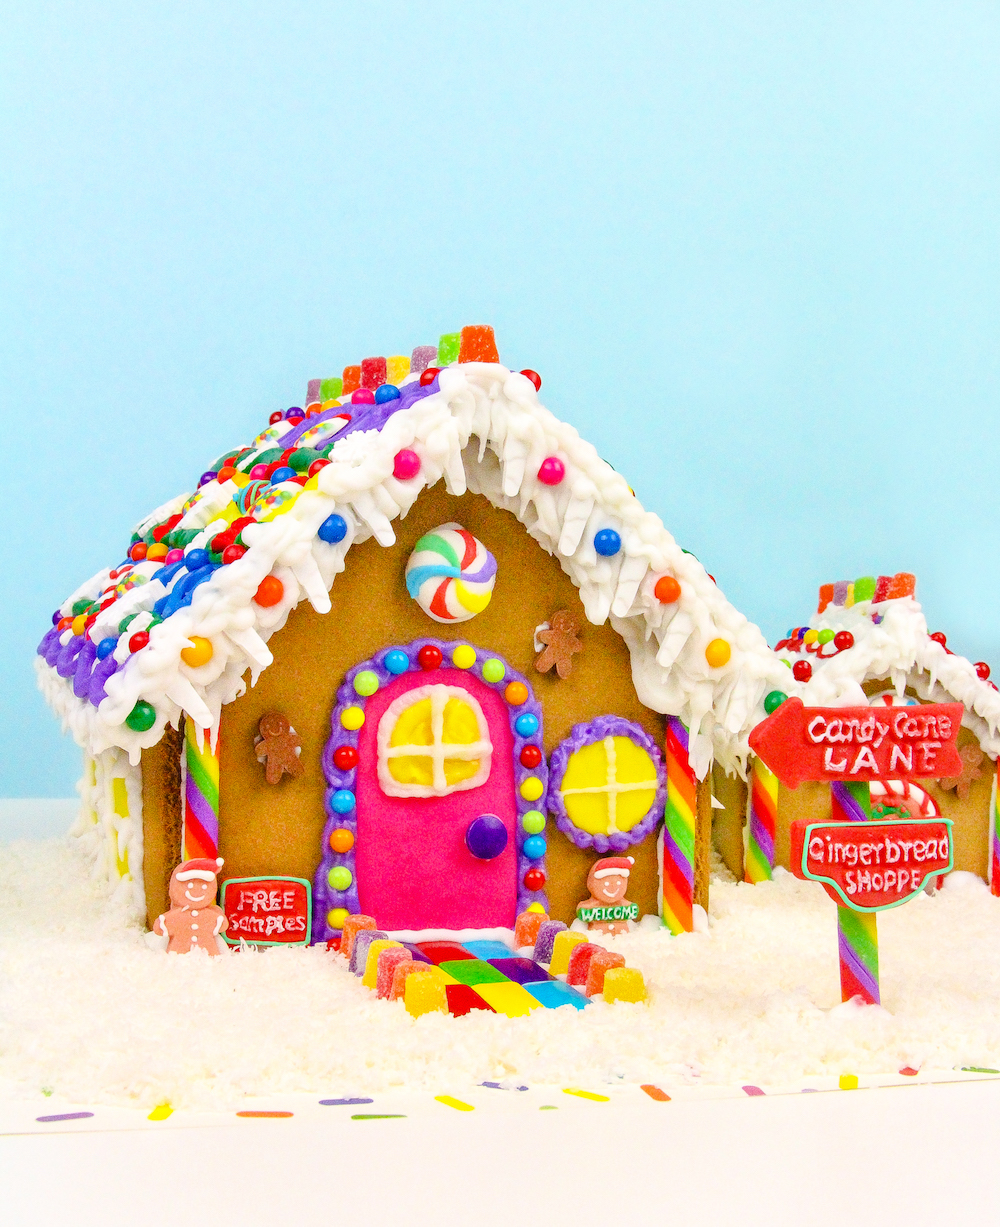 Diy rainbow gingerbread shoppe matching dog house brite and bubbly hey all solutioingenieria Image collections